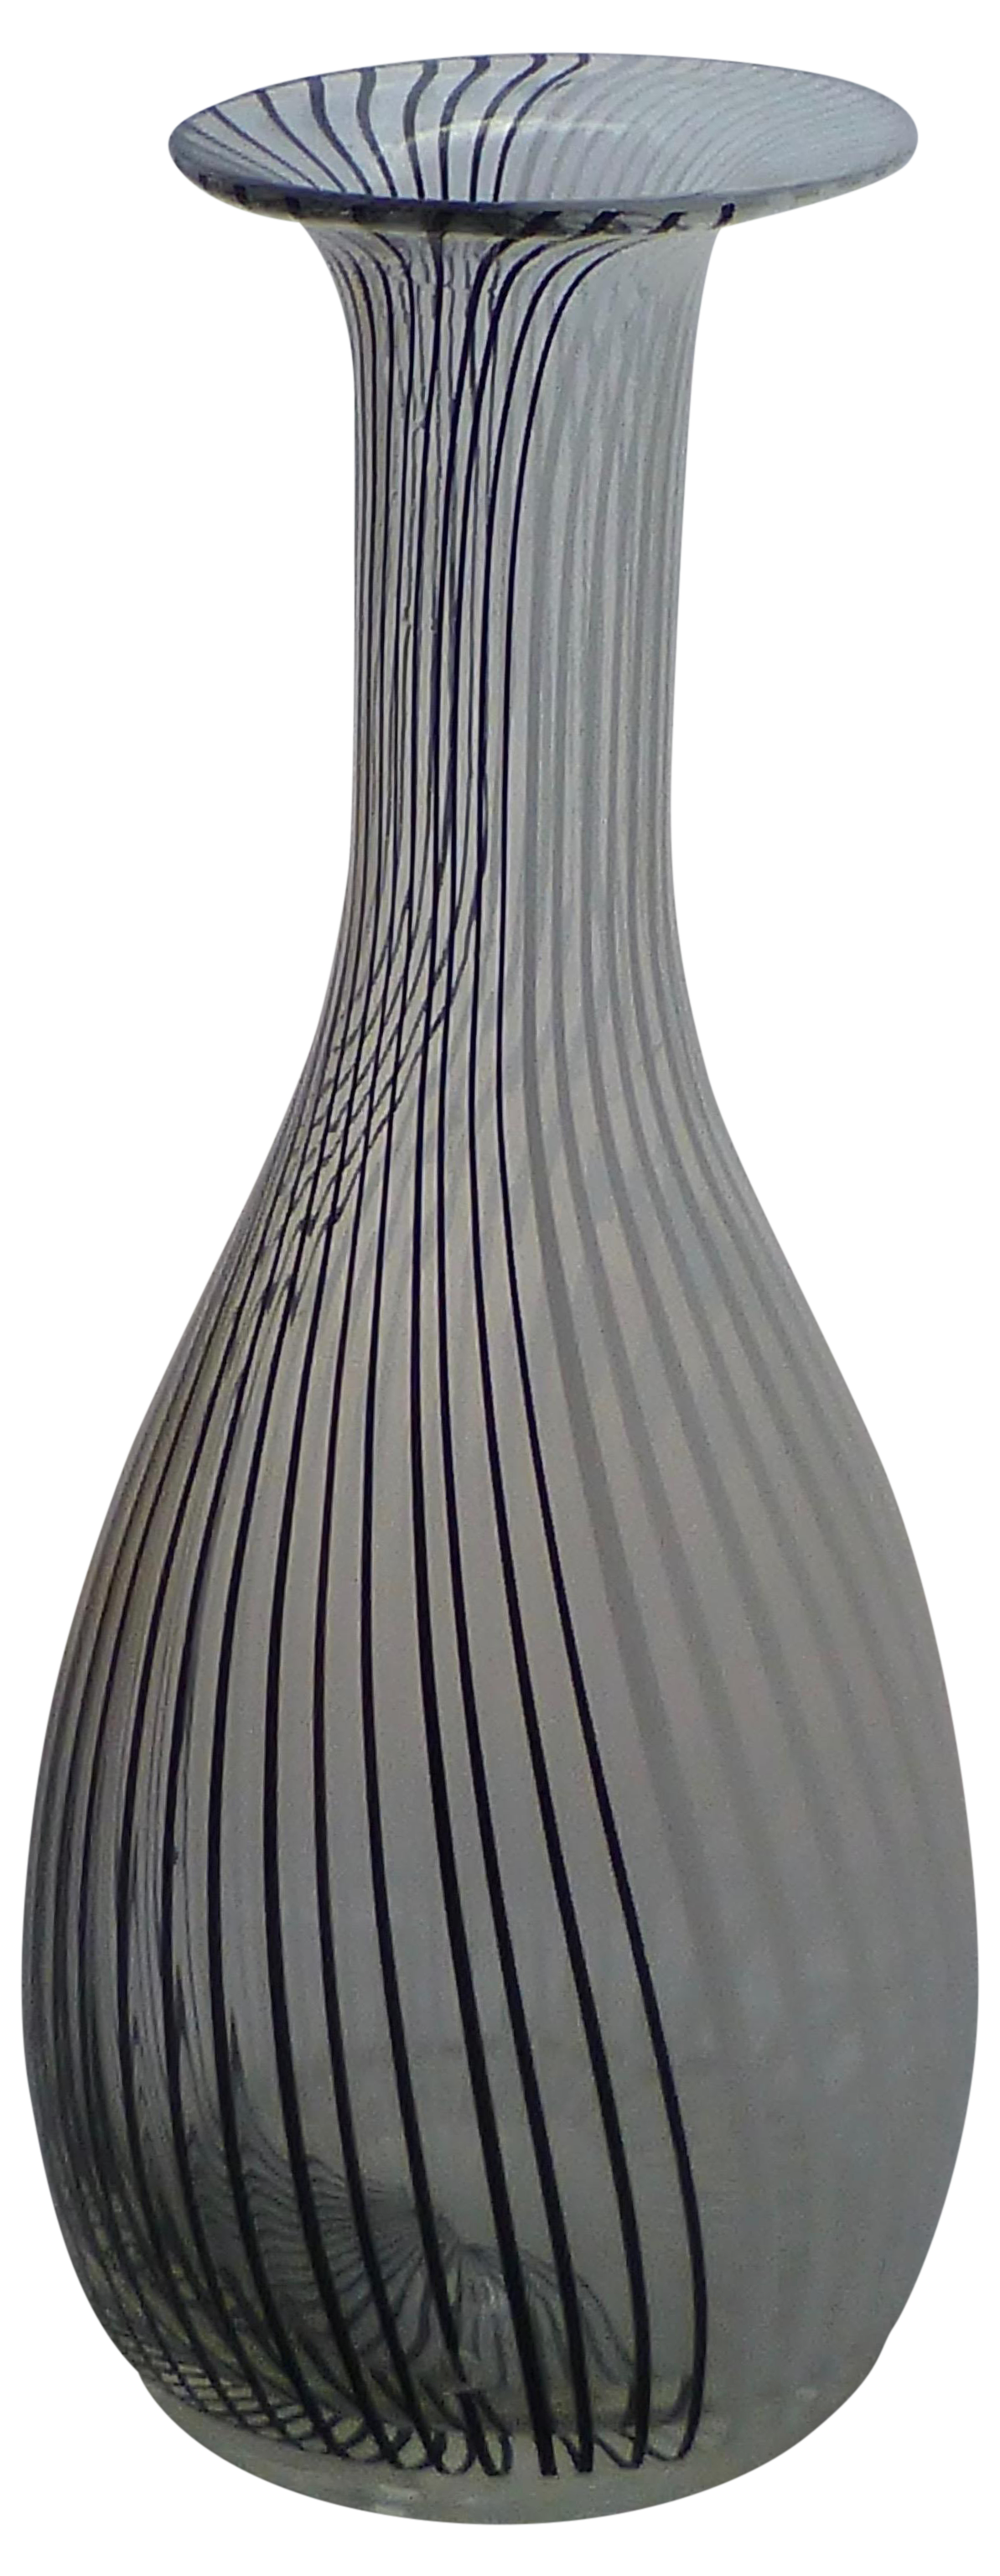 Murano Glass Black Amp White Striped Vase By Venini Chairish